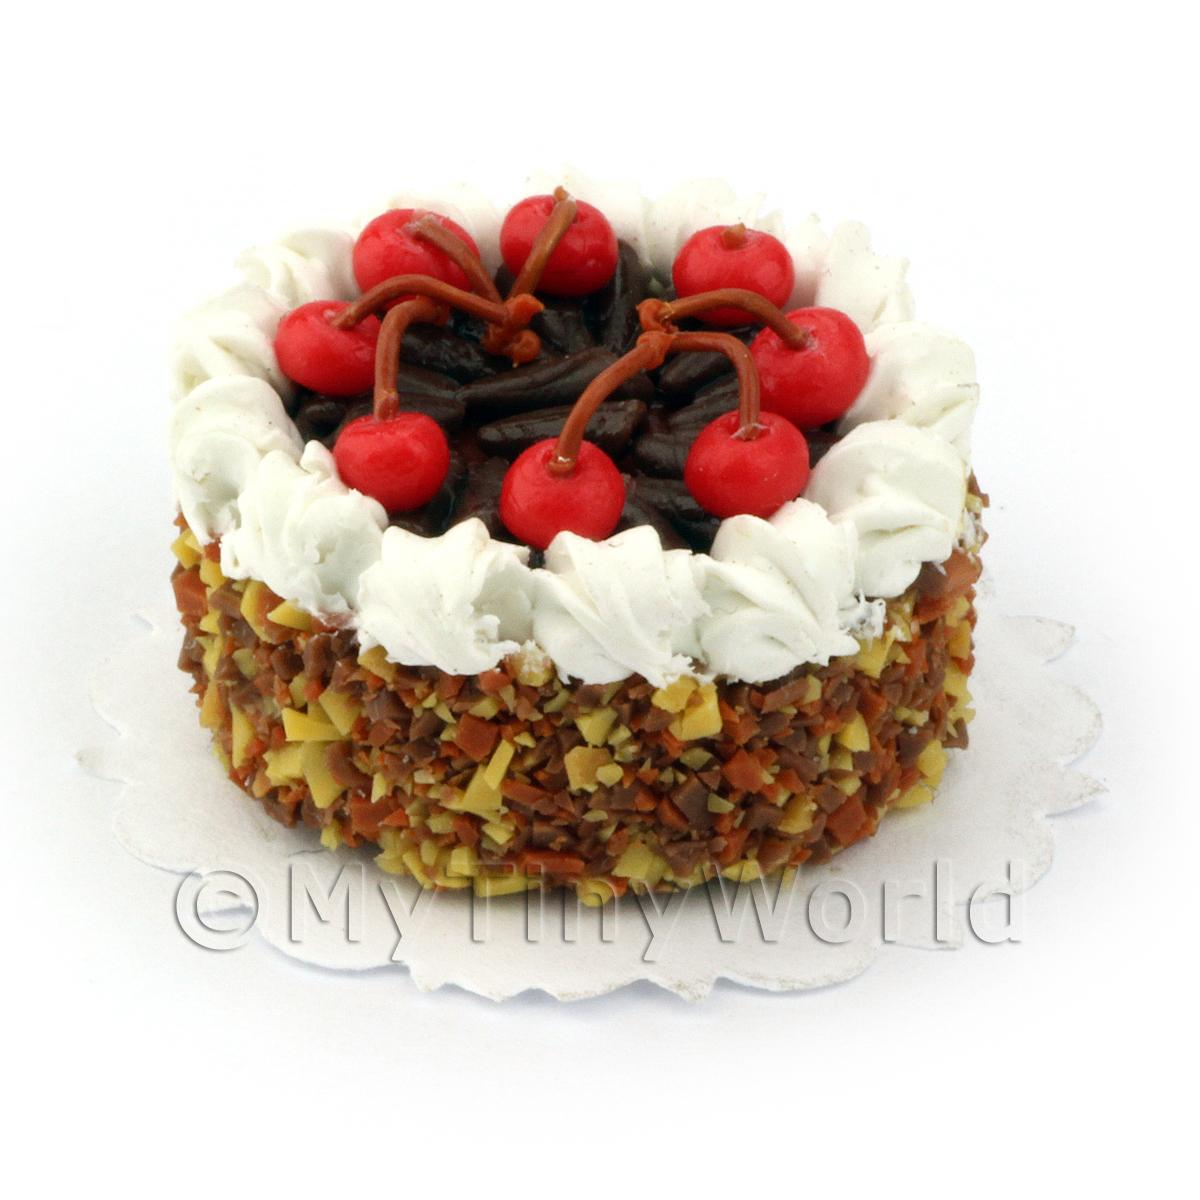 Dolls House Miniature Chocolate Cherry Cake